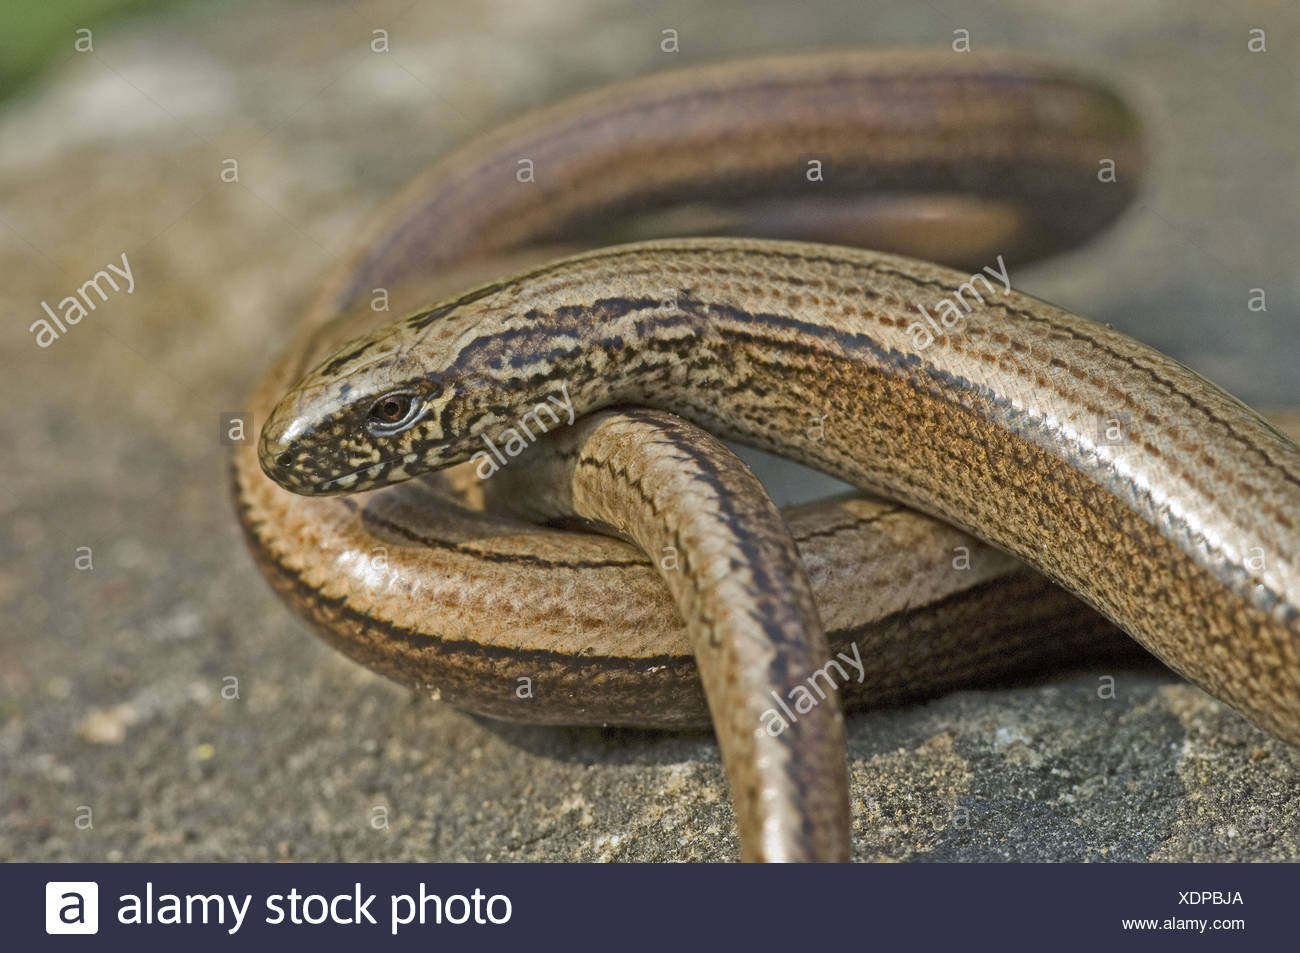 "reptile reptiles lizard lizards animal animals asia asian europe european eurasia eurasian ""legless lizard"" ""legless lizards"" Stock Photo"